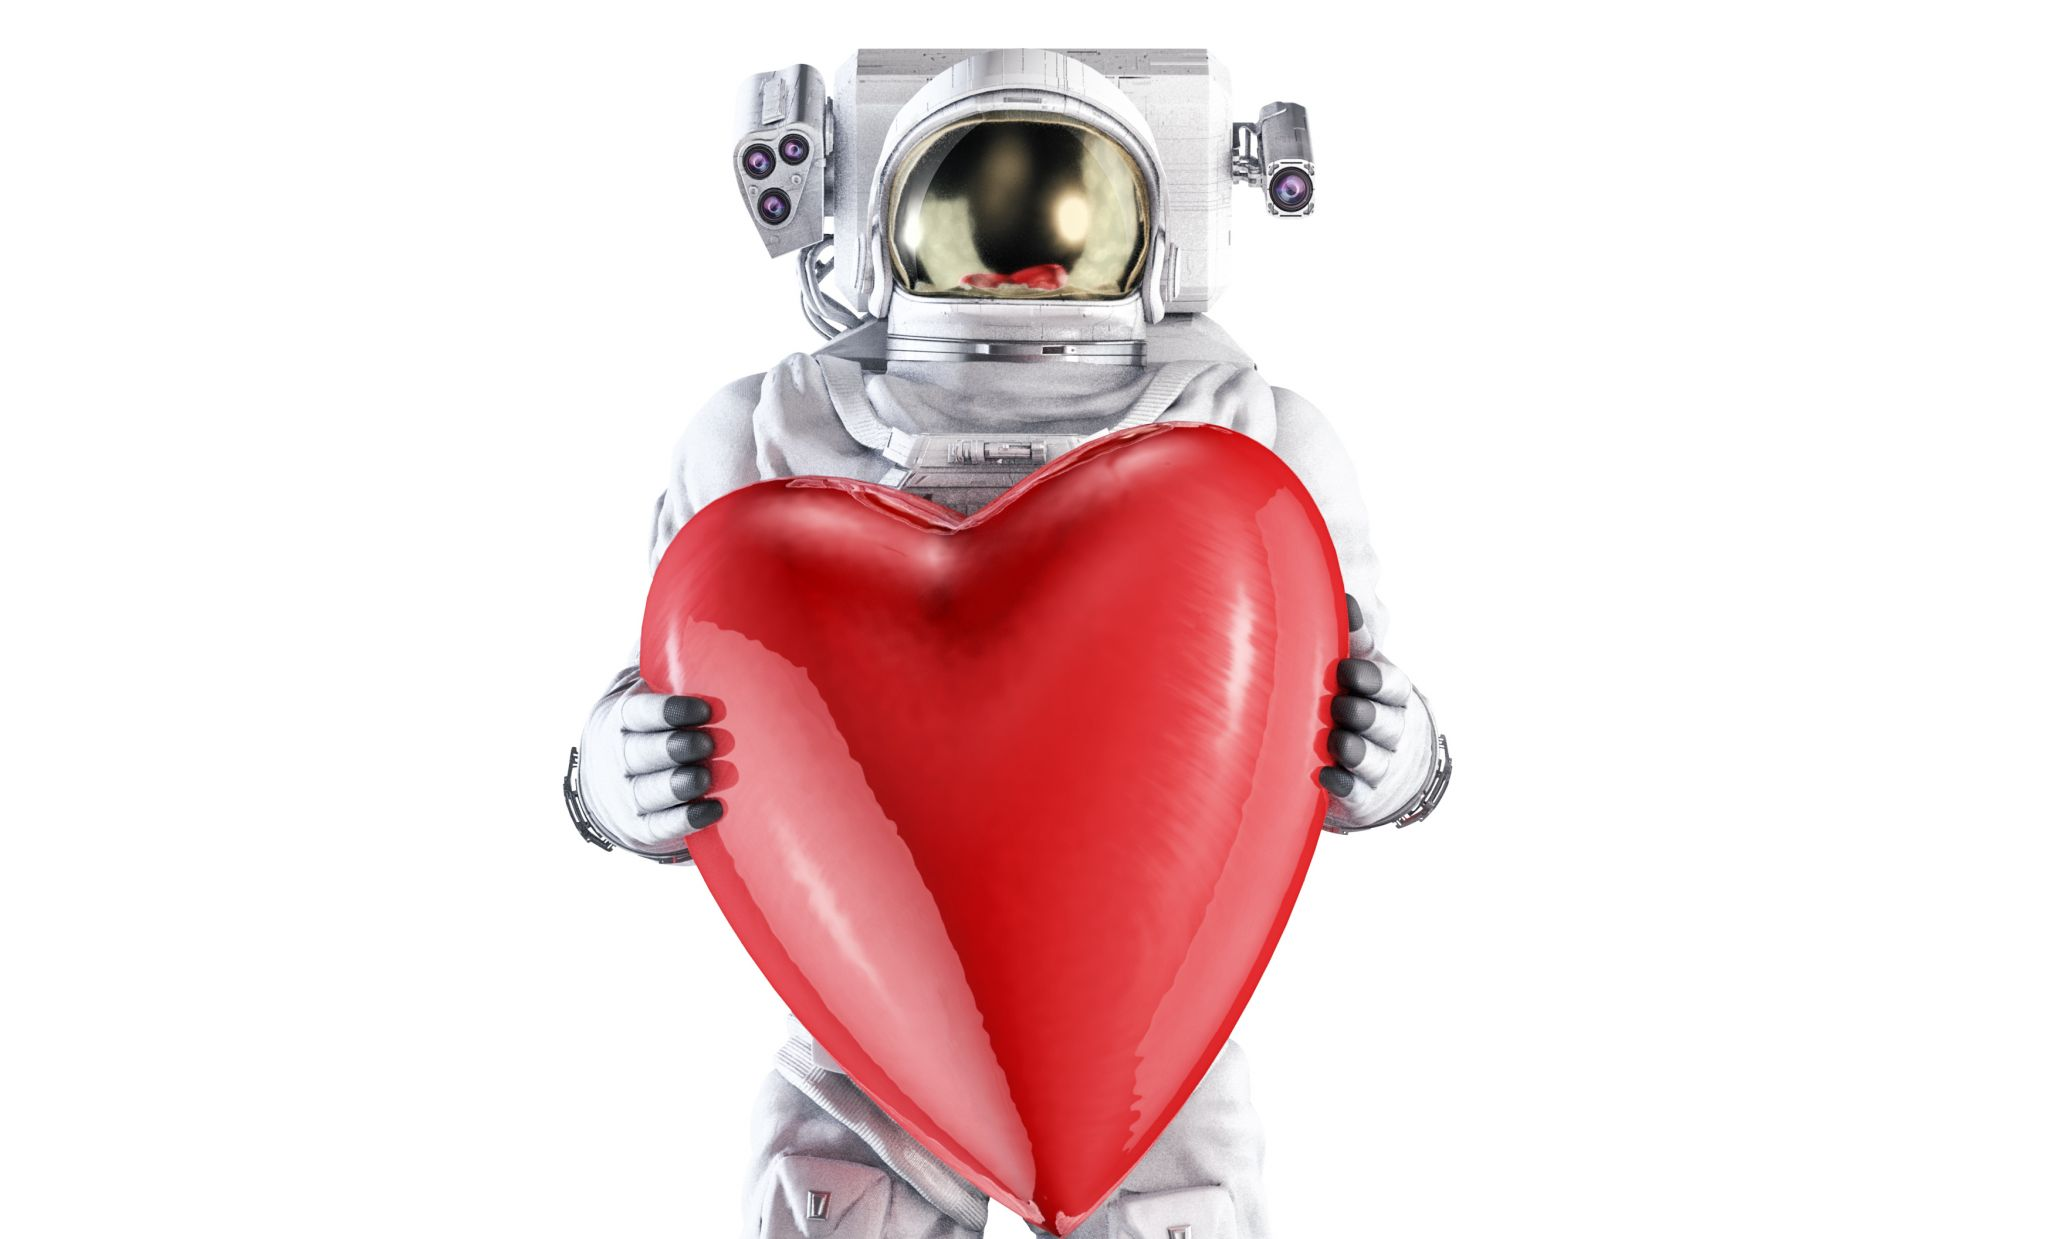 This is what long-term spaceflight does to your heart